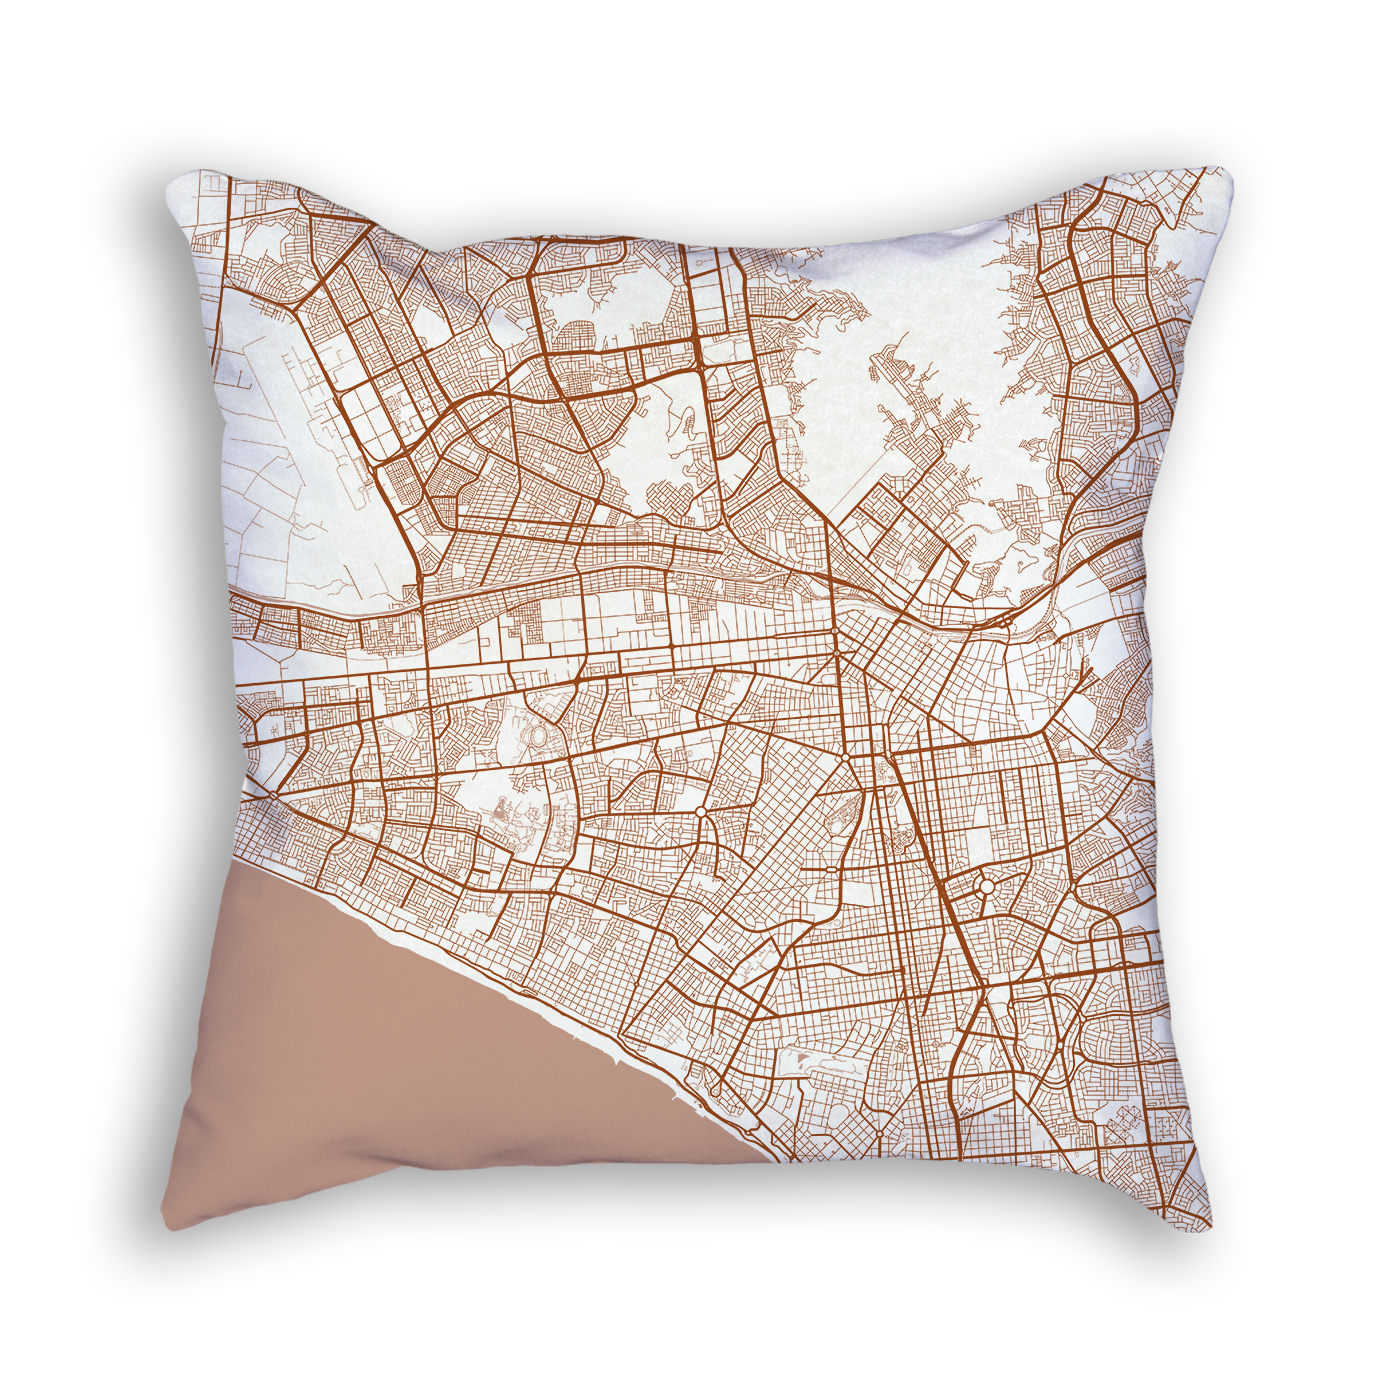 Lima Peru City Map Art Decorative Throw Pillow